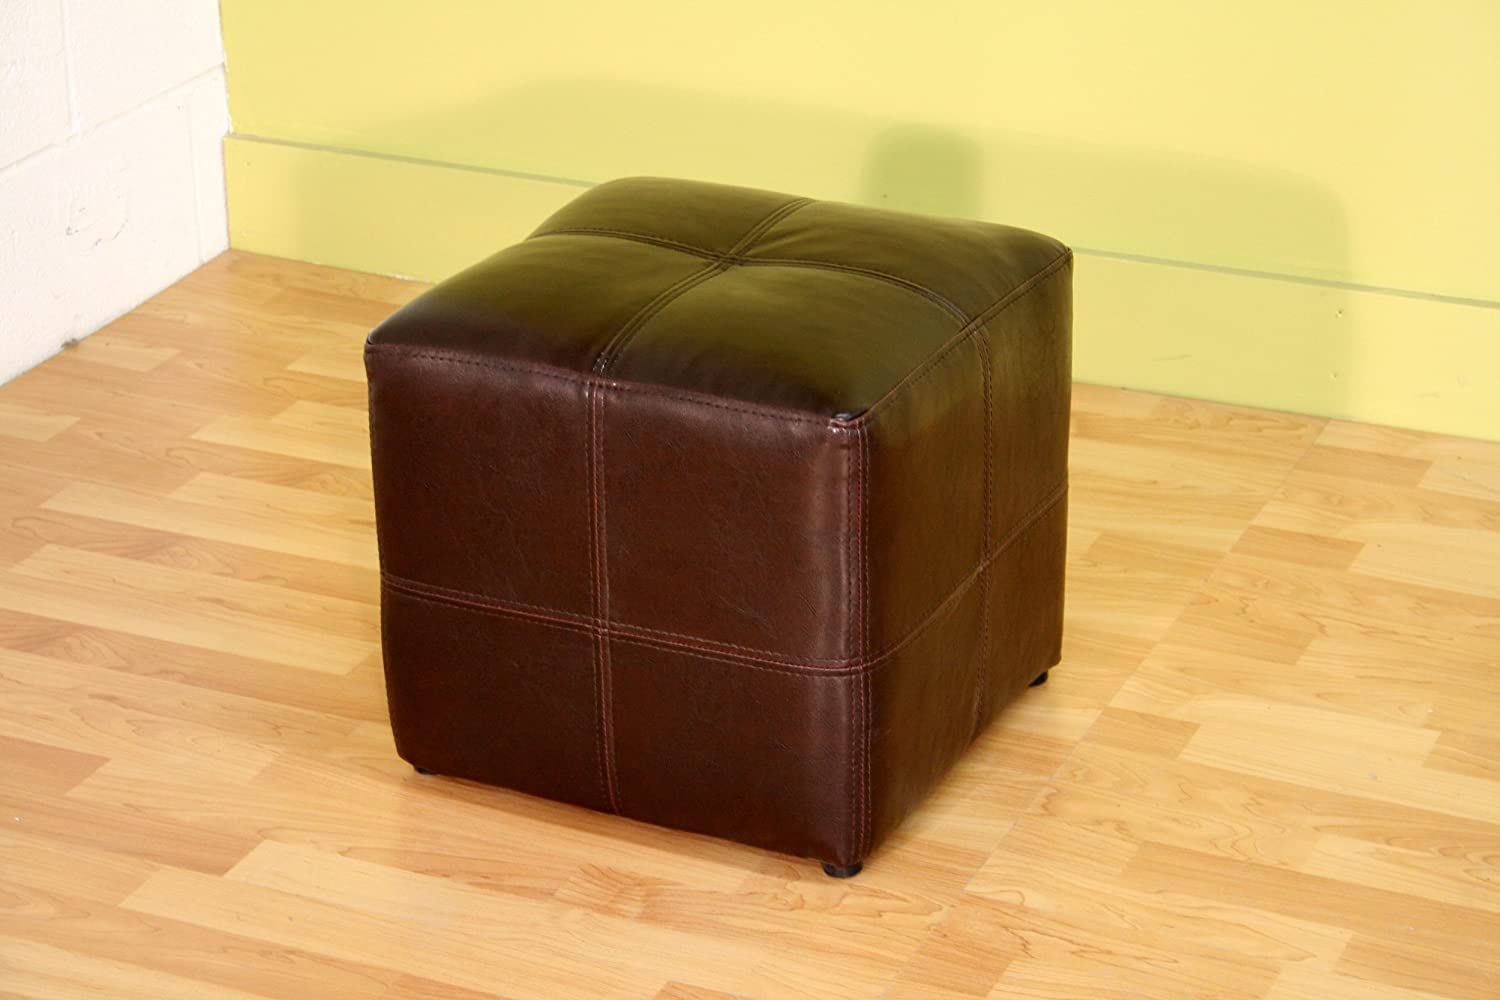 amazoncom baxton studio nox brown leather ottoman kitchen  dining -